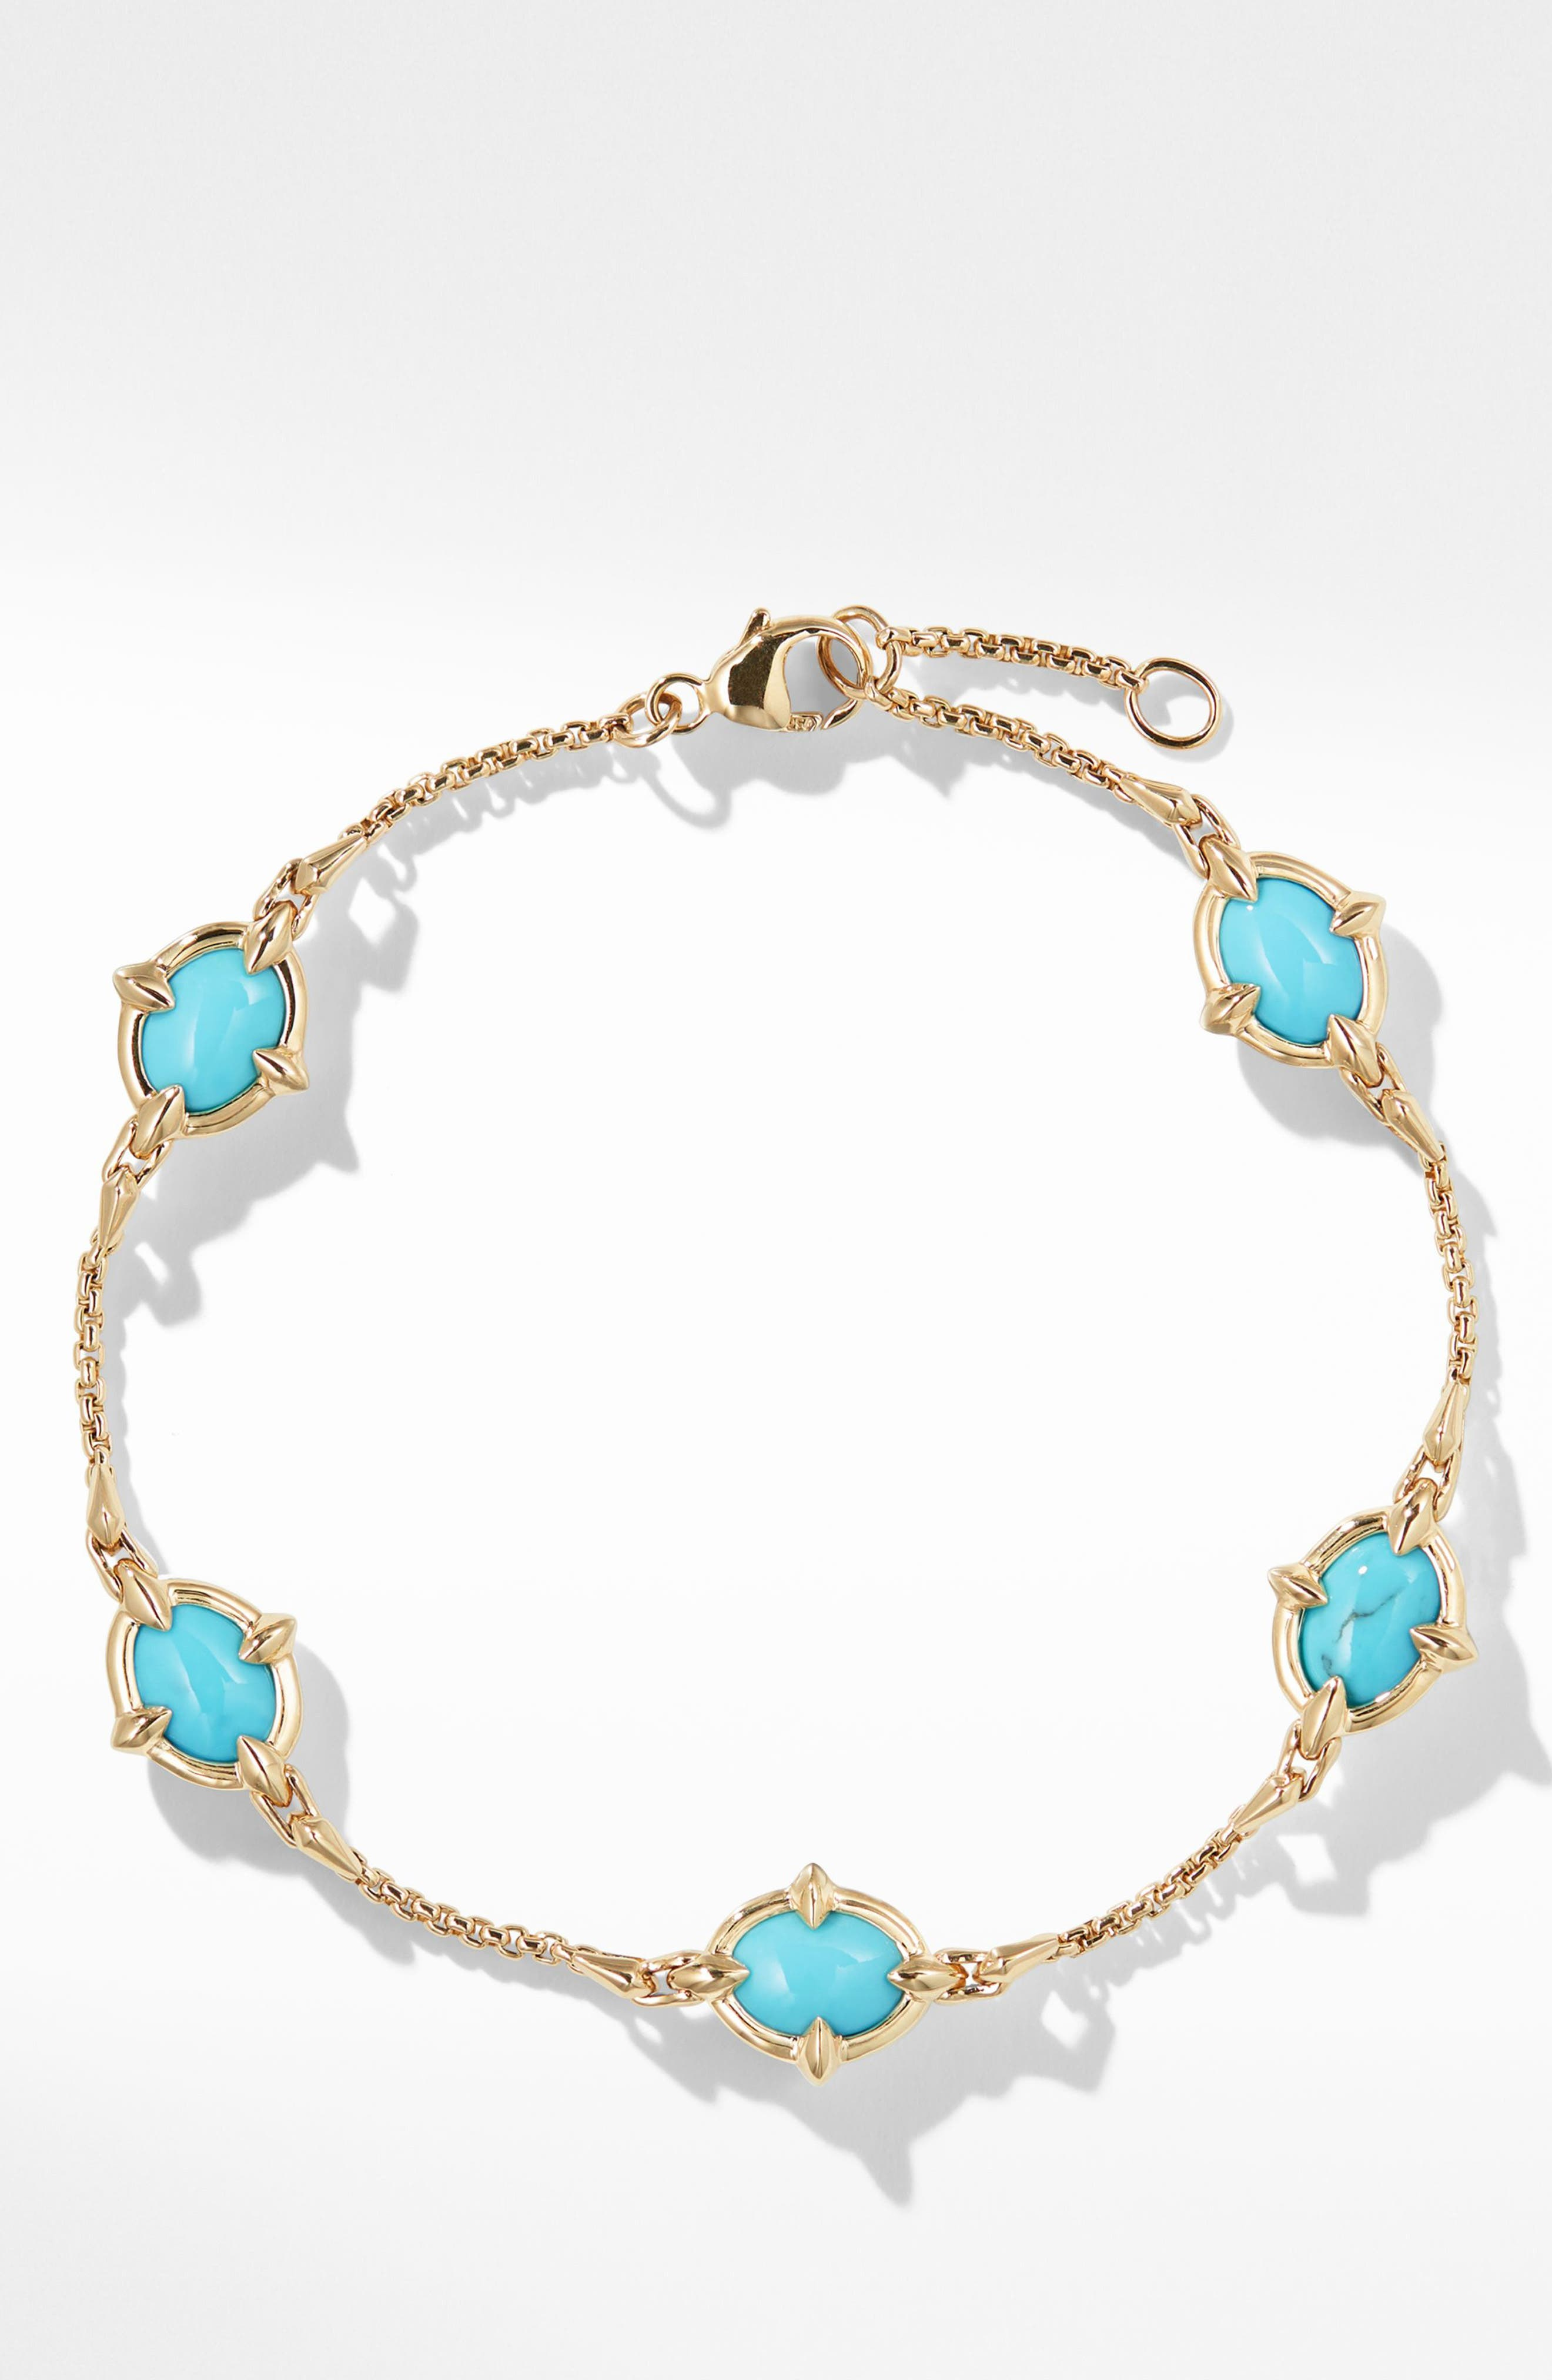 Chatelaine<sup>®</sup> Chain Bracelet in 18K Gold with Turquoise,                             Alternate thumbnail 2, color,                             440